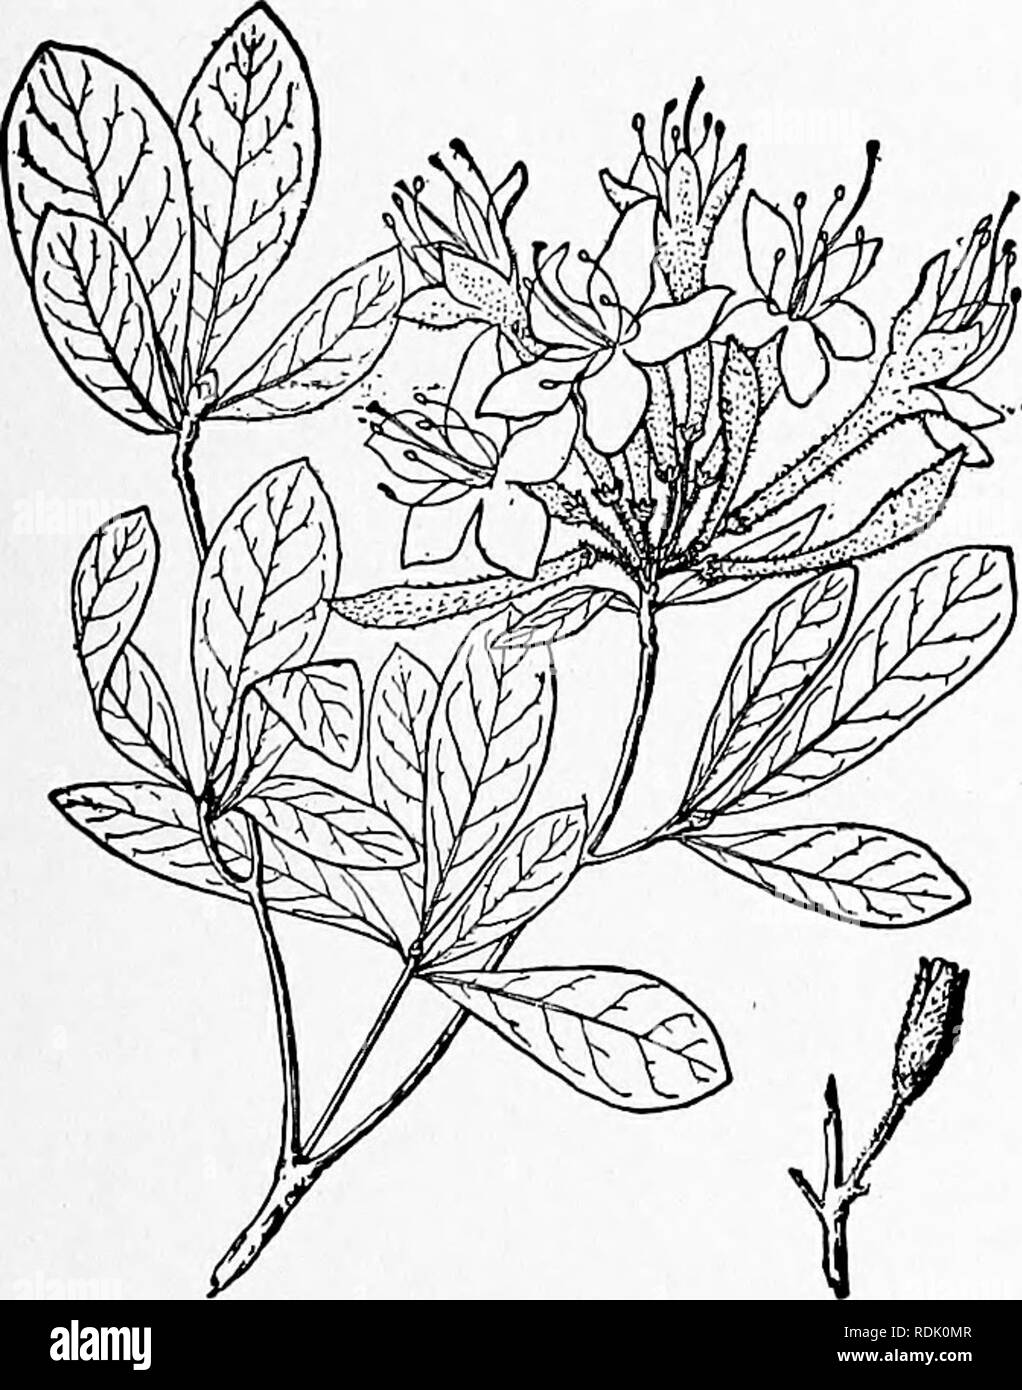 . An illustrated flora of the northern United States, Canada and the British possessions, from Newfoundland to the parallel of the southern boundary of Virginia, and from the Atlantic Ocean westward to the 102d meridian. Botany; Botany. 5. Azalea viscosa L. Swamp Pink or Honeysuckle. White Azalea. Fig. 3219. A:::alea viscosa L. Sp. PI. 151- 1753- Rhododendron viscosiim Torr. Fl. N. & Mid. U. S. 424. 1824. A shrub, i°-8° high, usually much branched, the twigs hairy. Leaves obovate-oblong to oblanceolate, 1-4' long, very short-petioled, obtuse and mucronulate or acute at the apex, narrowed a - Stock Image